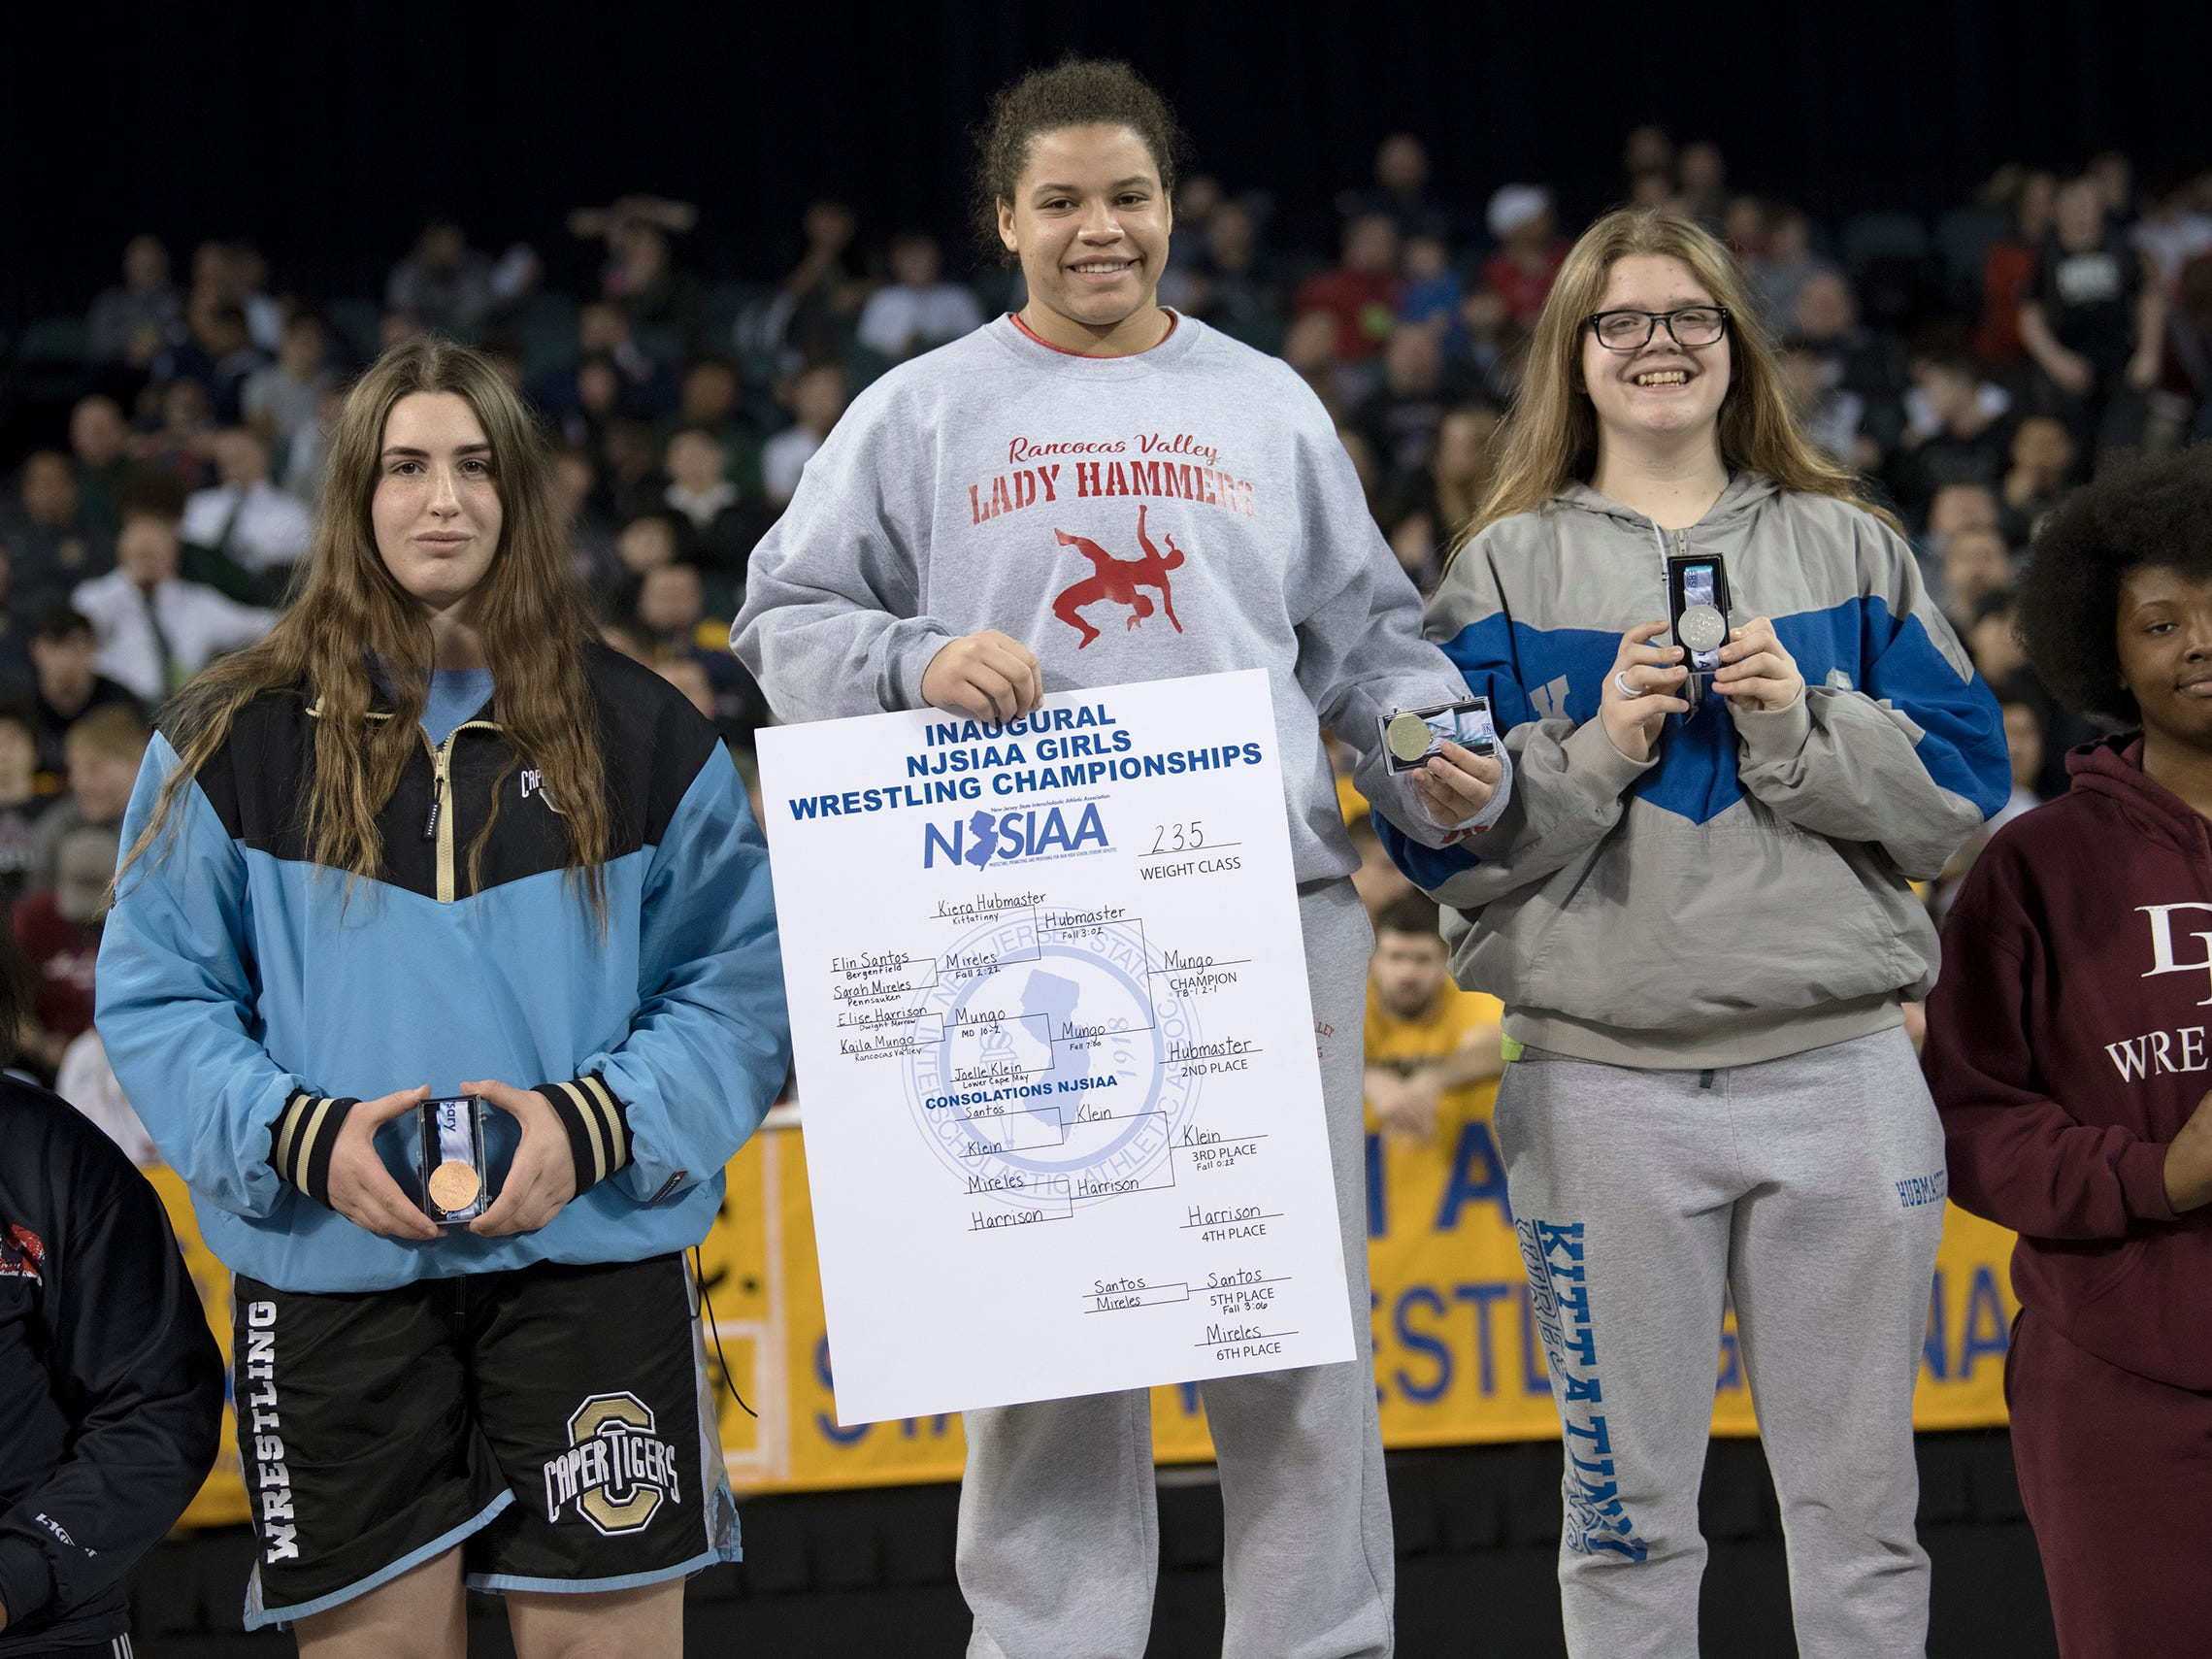 Rancocas Valley's Kaila Mungo, center, stands atop the podum after defeating Kittatinny's Kiera Hubmaster, 2-1, in the 235 lb. championship bout of the 2019 NJSIAA Girls State Wrestling Championships tournament held at Boardwalk Hall in Atlantic City on Saturday, March 2, 2019.